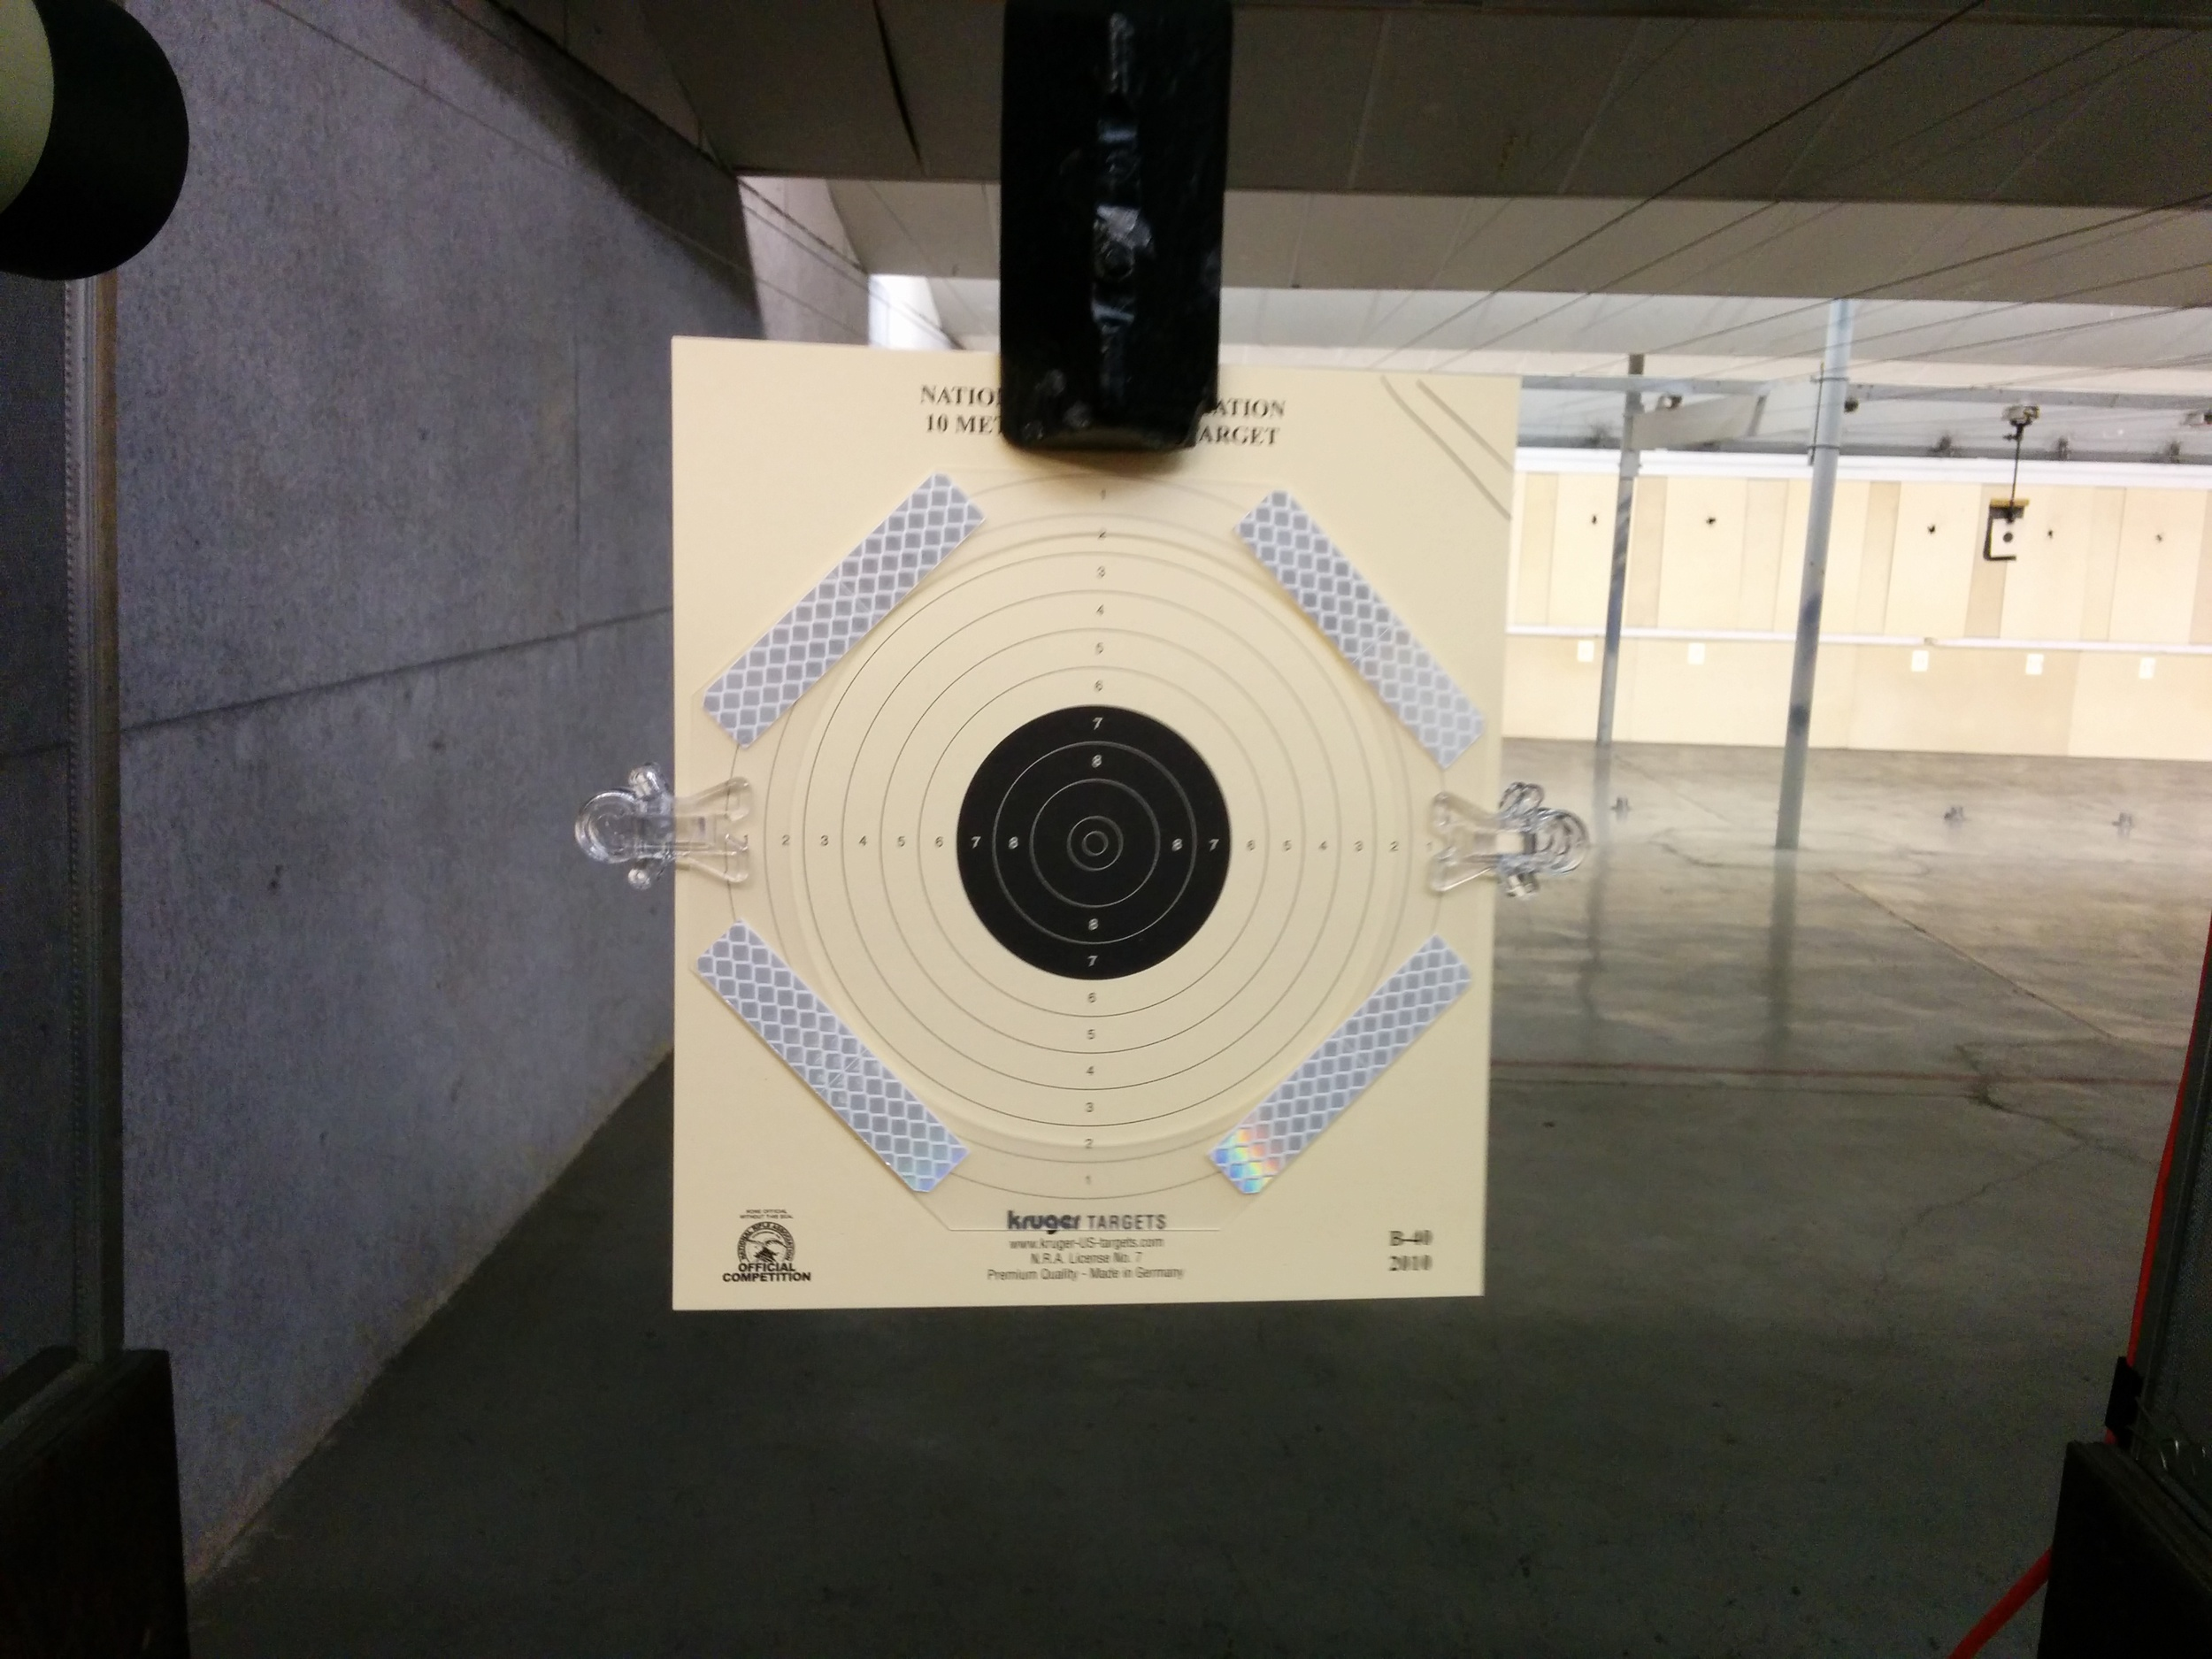 The testing setup included a 10m air pistol target with reflective tape.